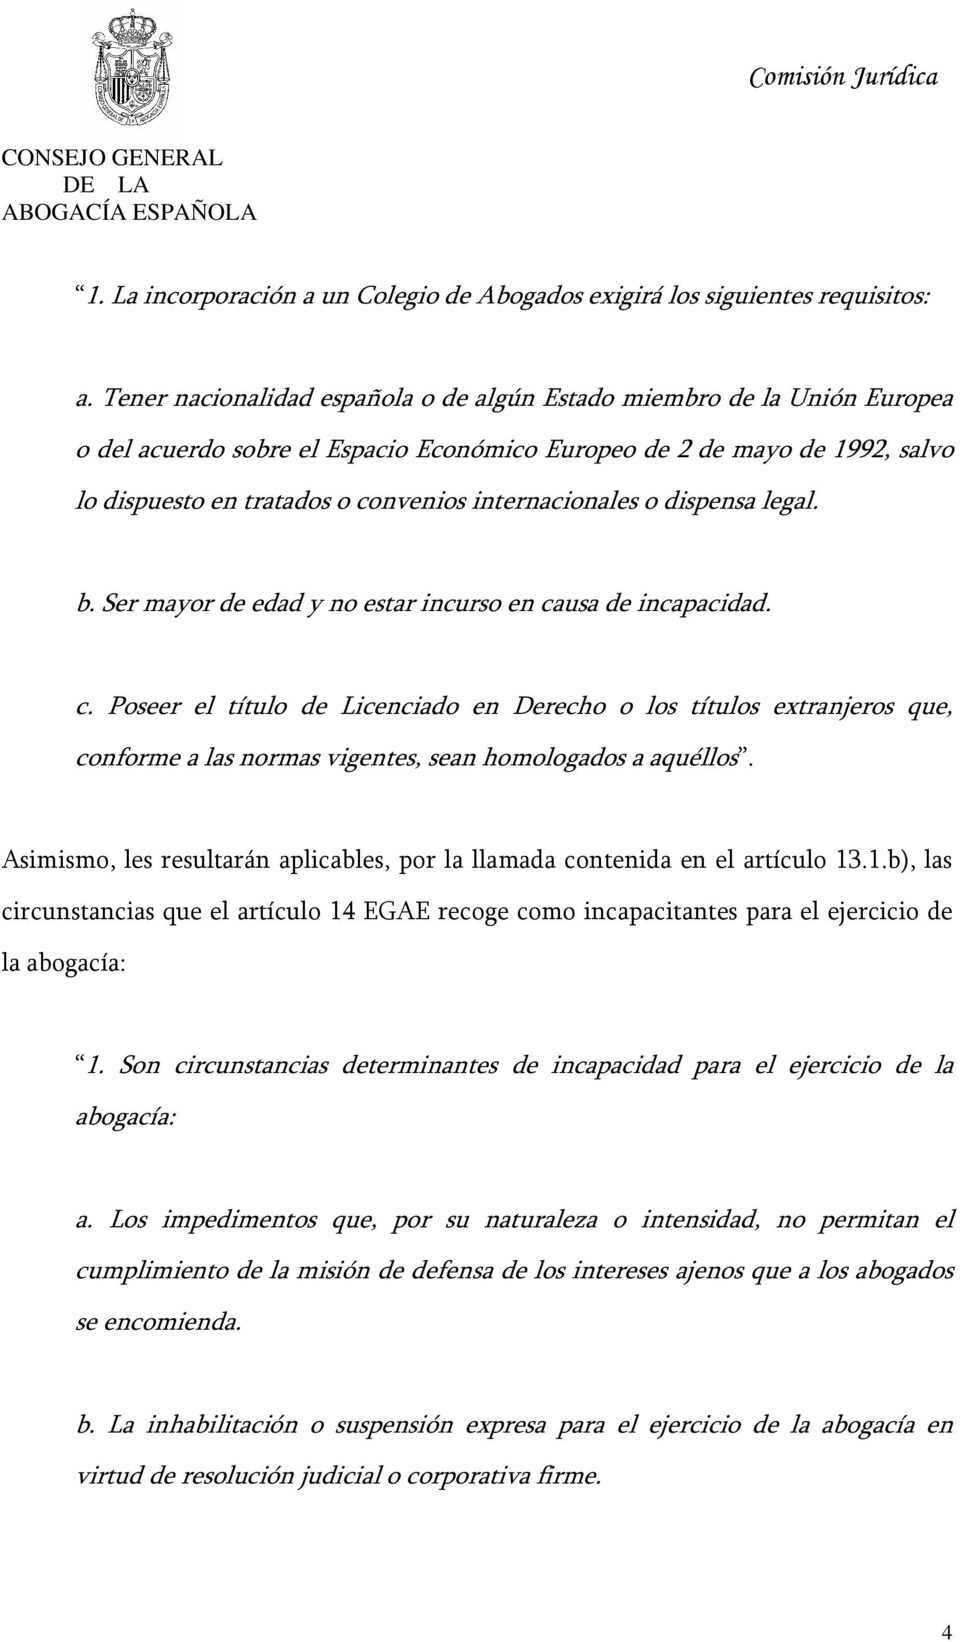 internacionales o dispensa legal. b. Ser mayor de edad y no estar incurso en ca